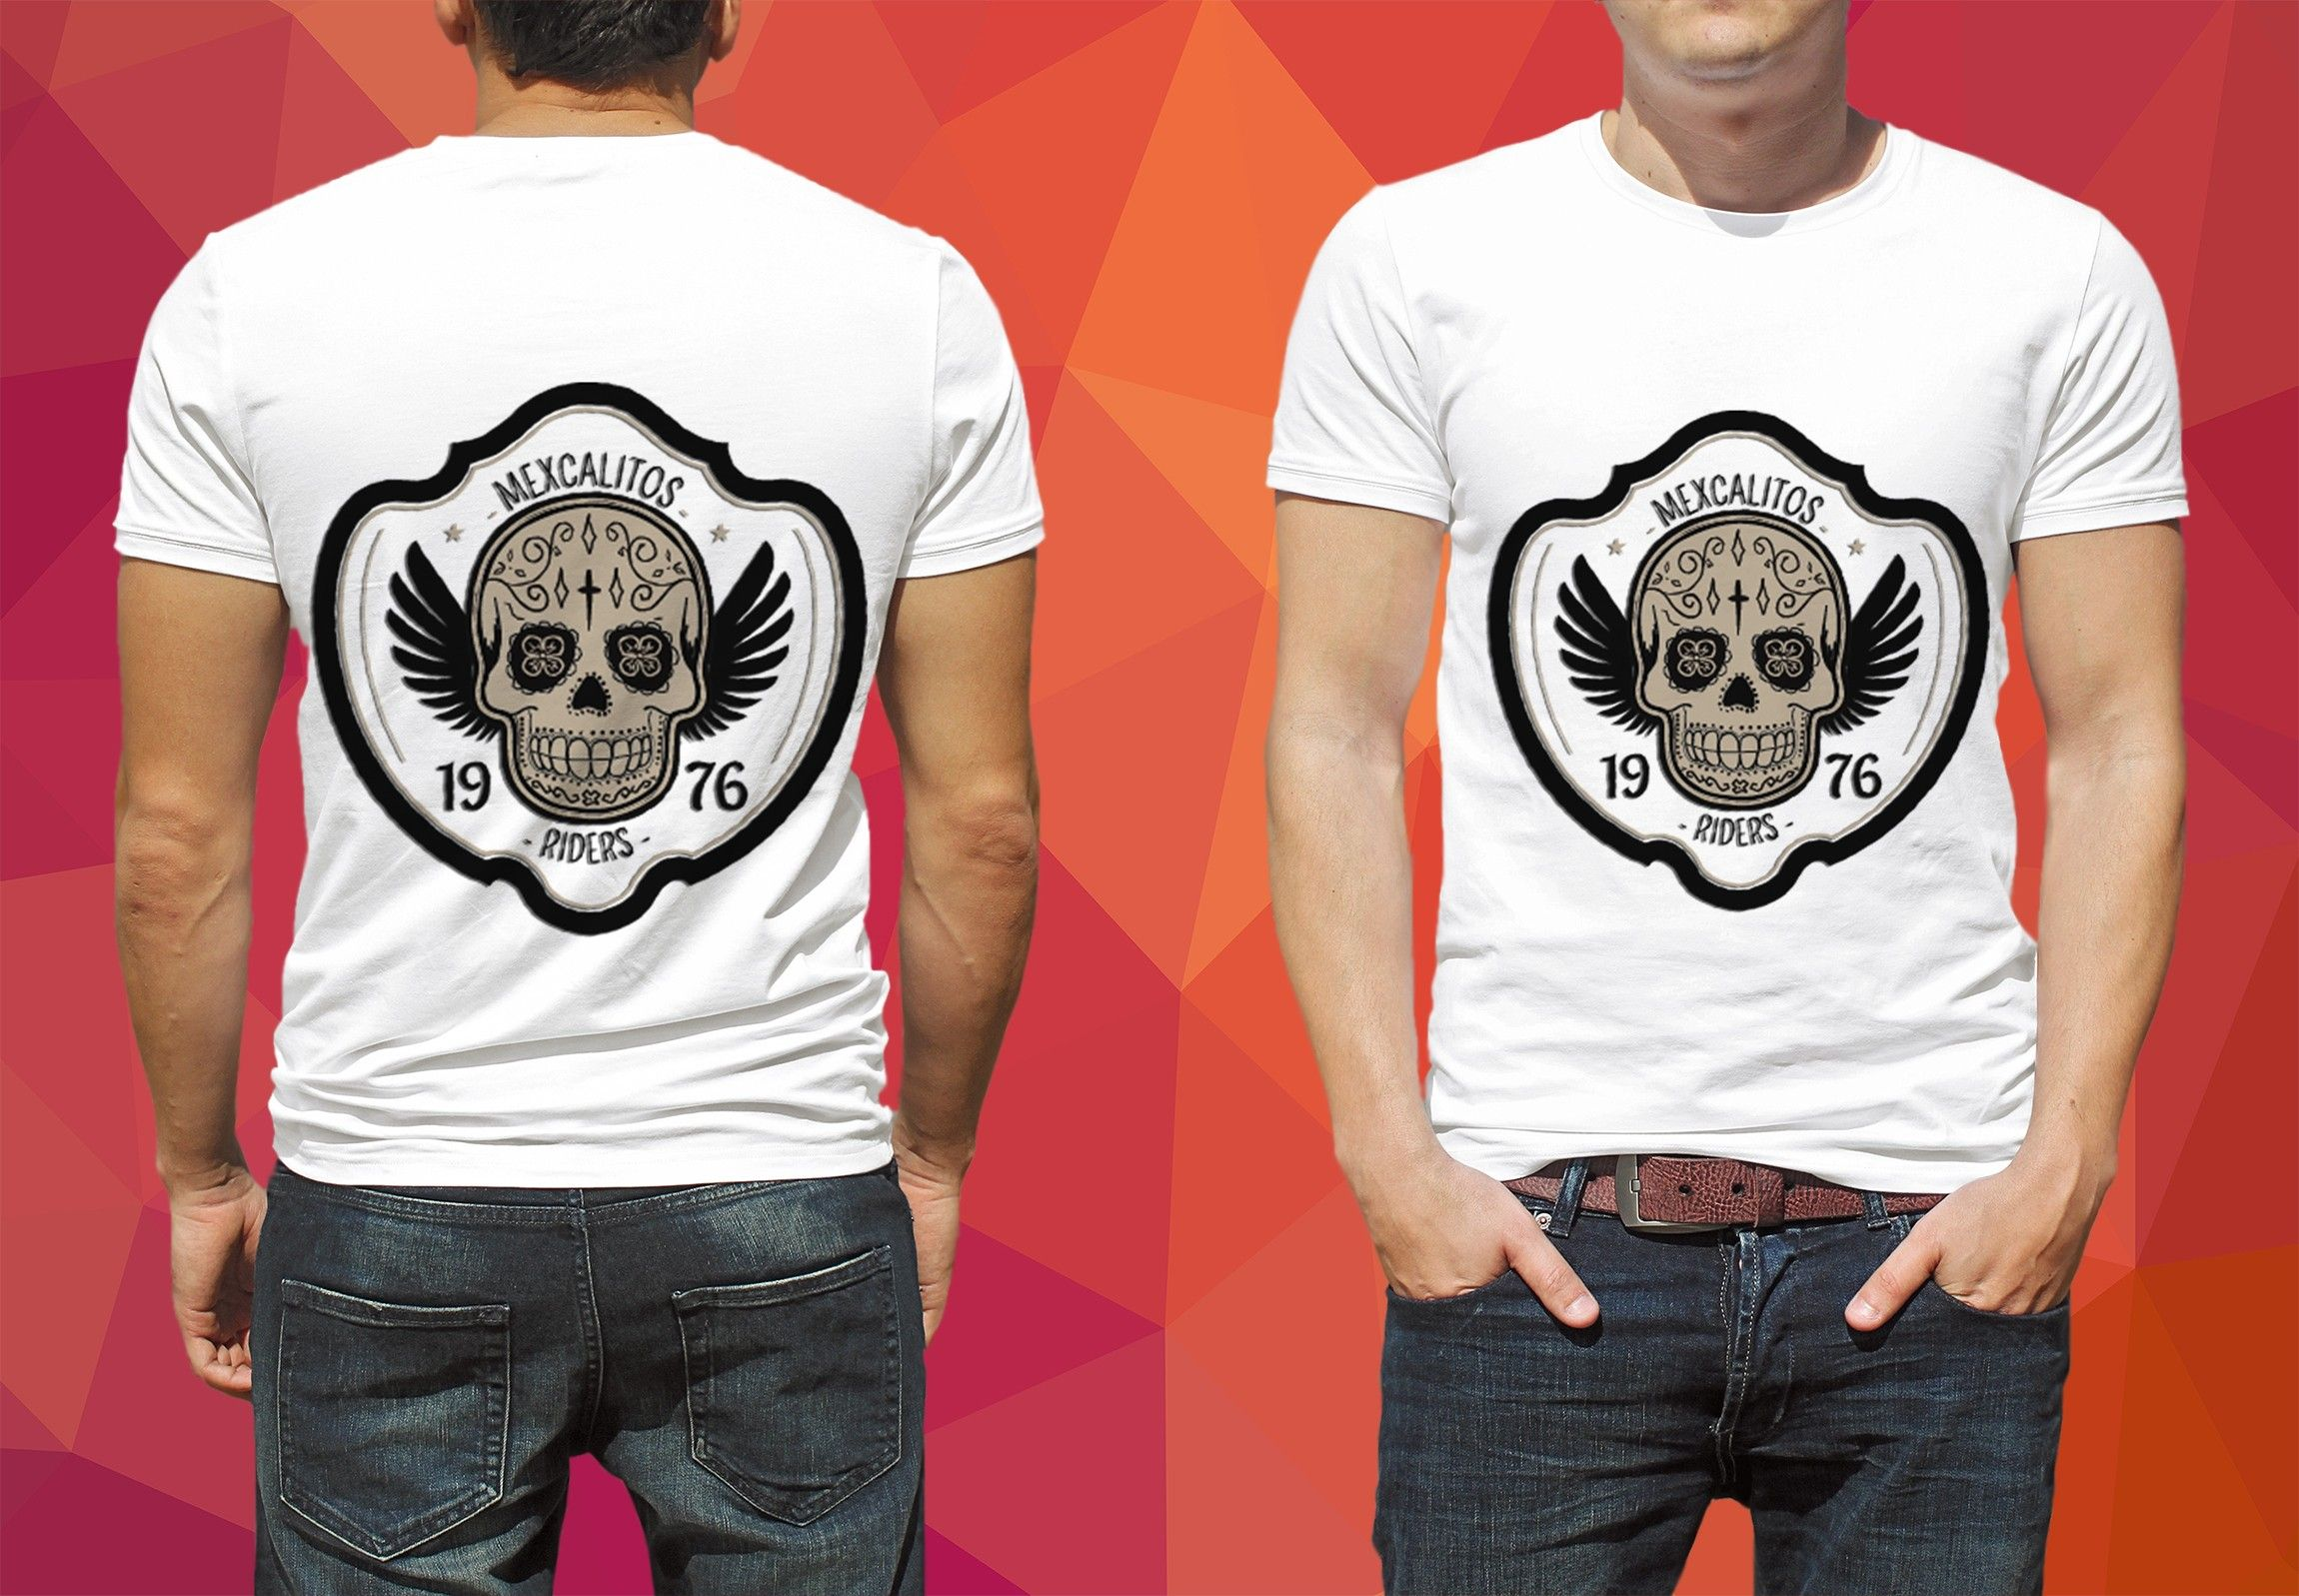 Corel draw vs photoshop for t shirt design - Design T Shirts On Teespring Design T Shirt Photoshop Design T